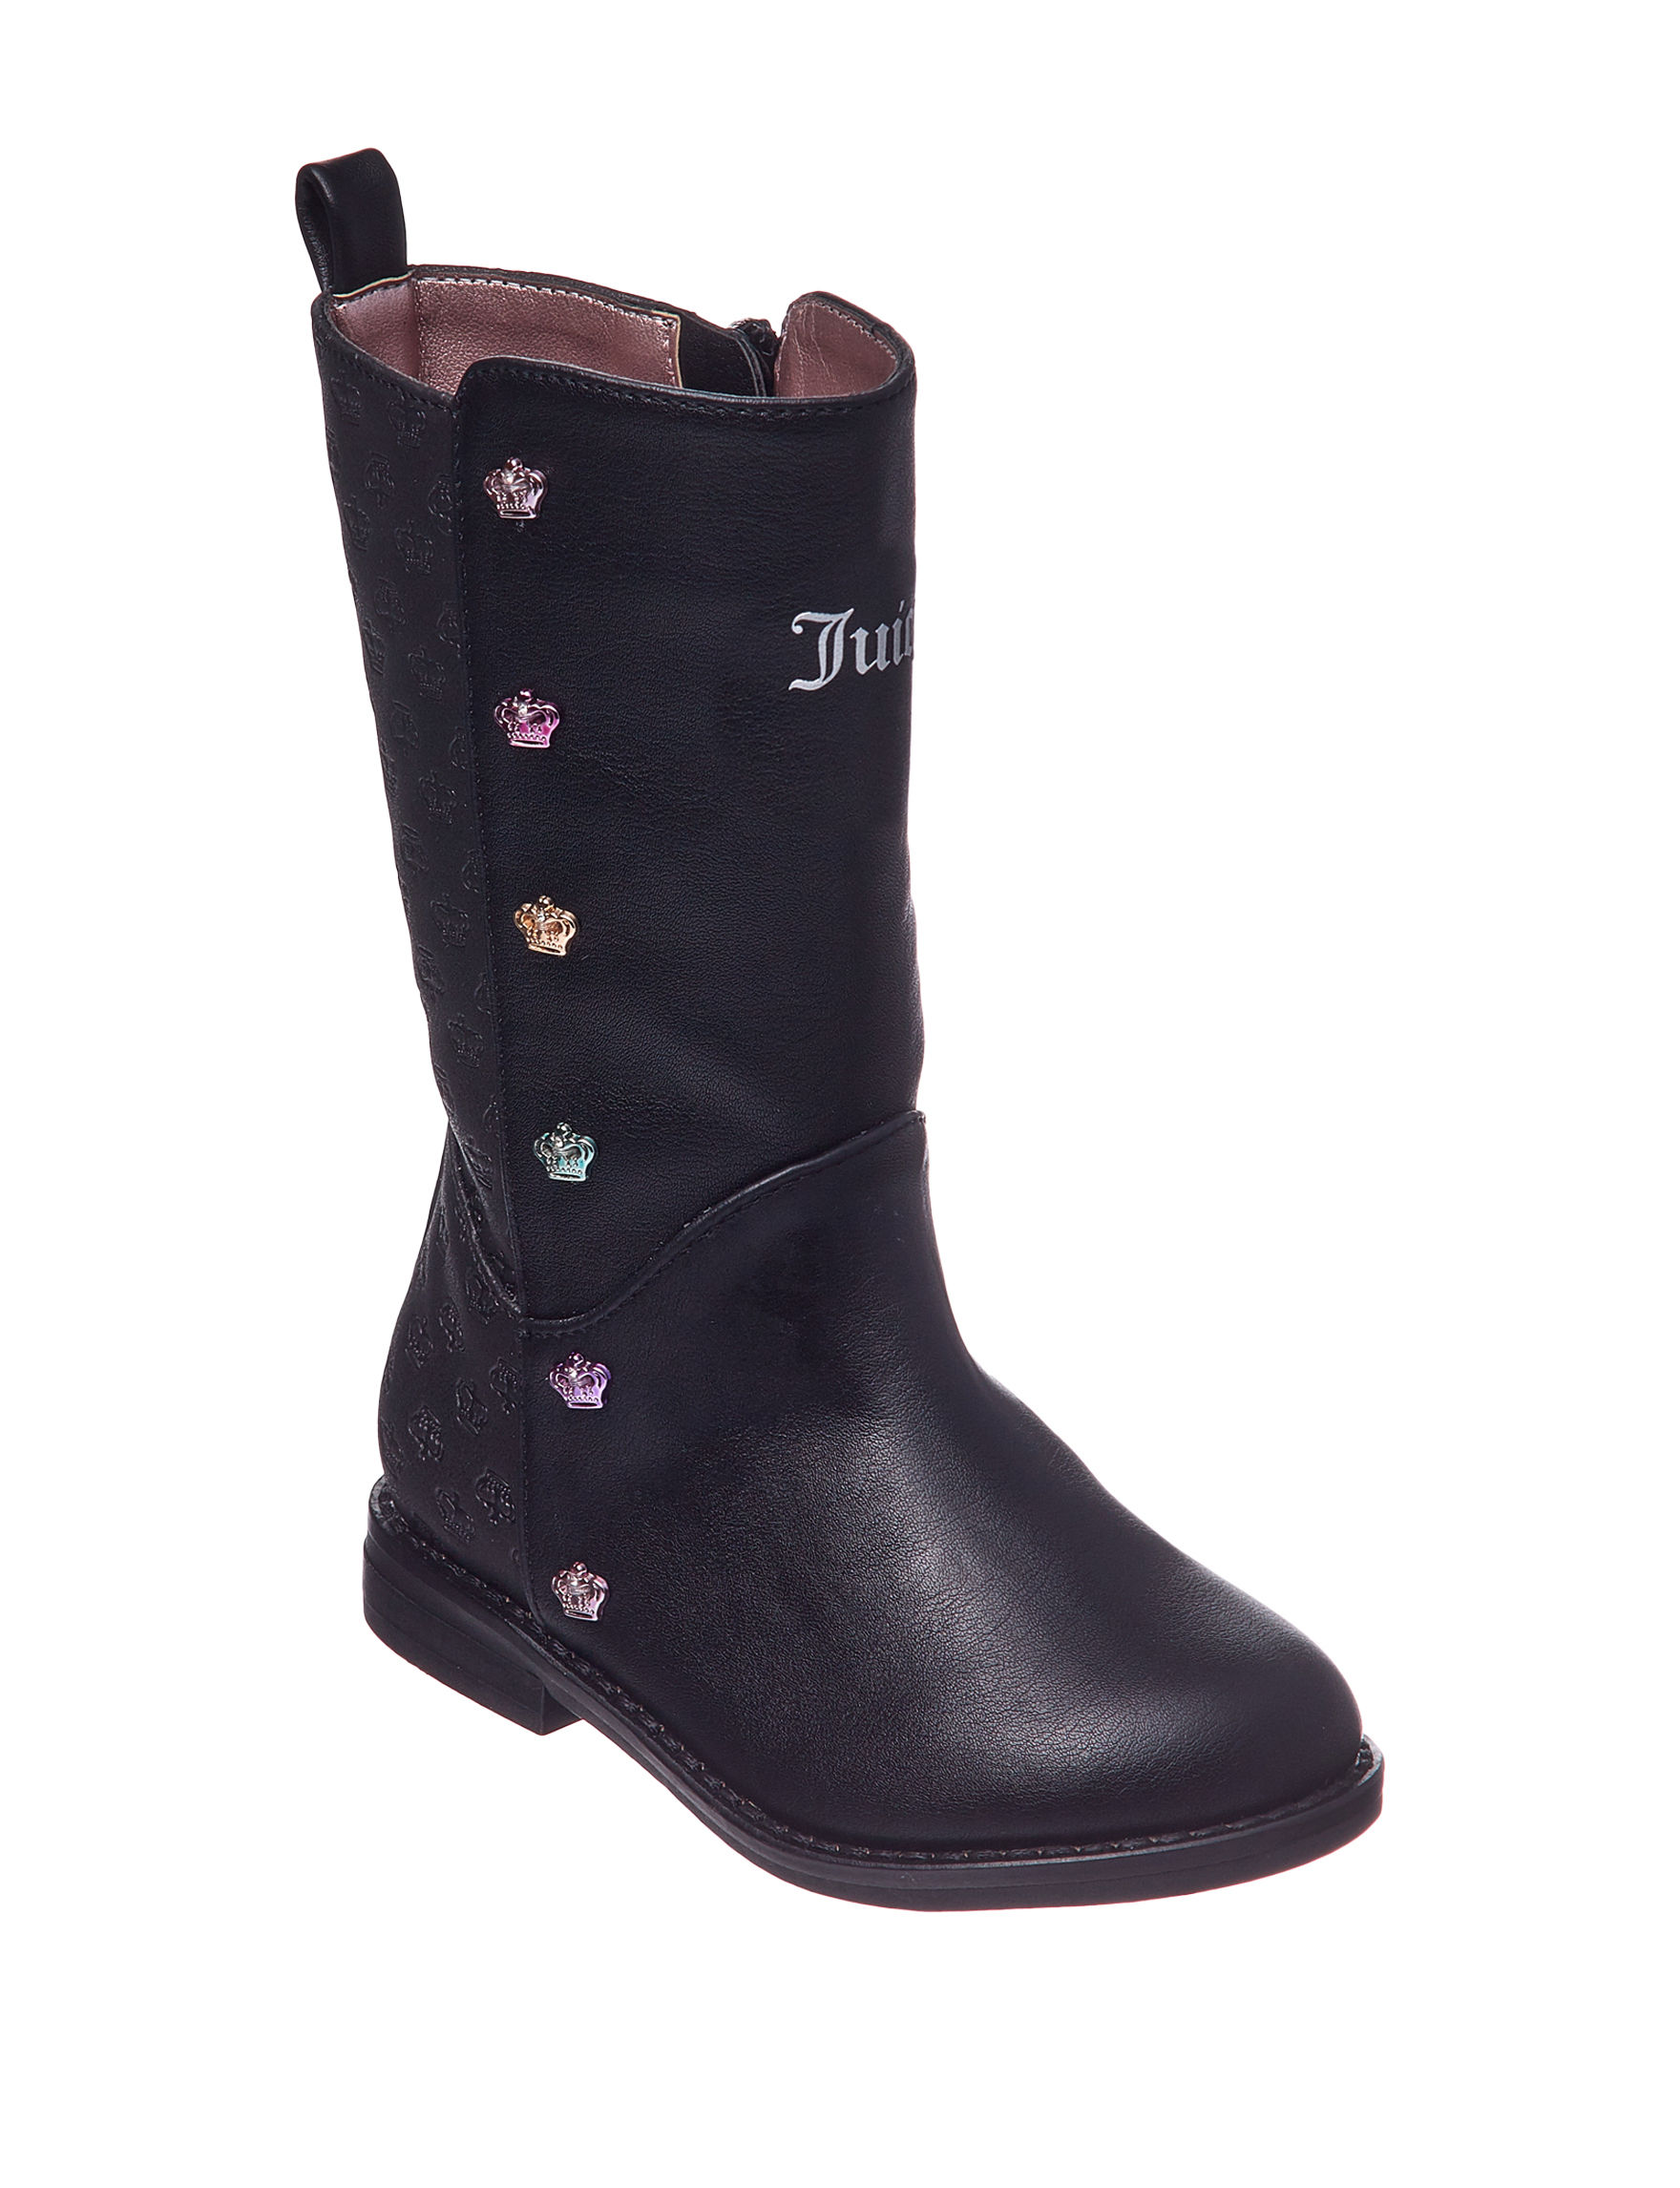 Juicy Couture Black Riding Boots